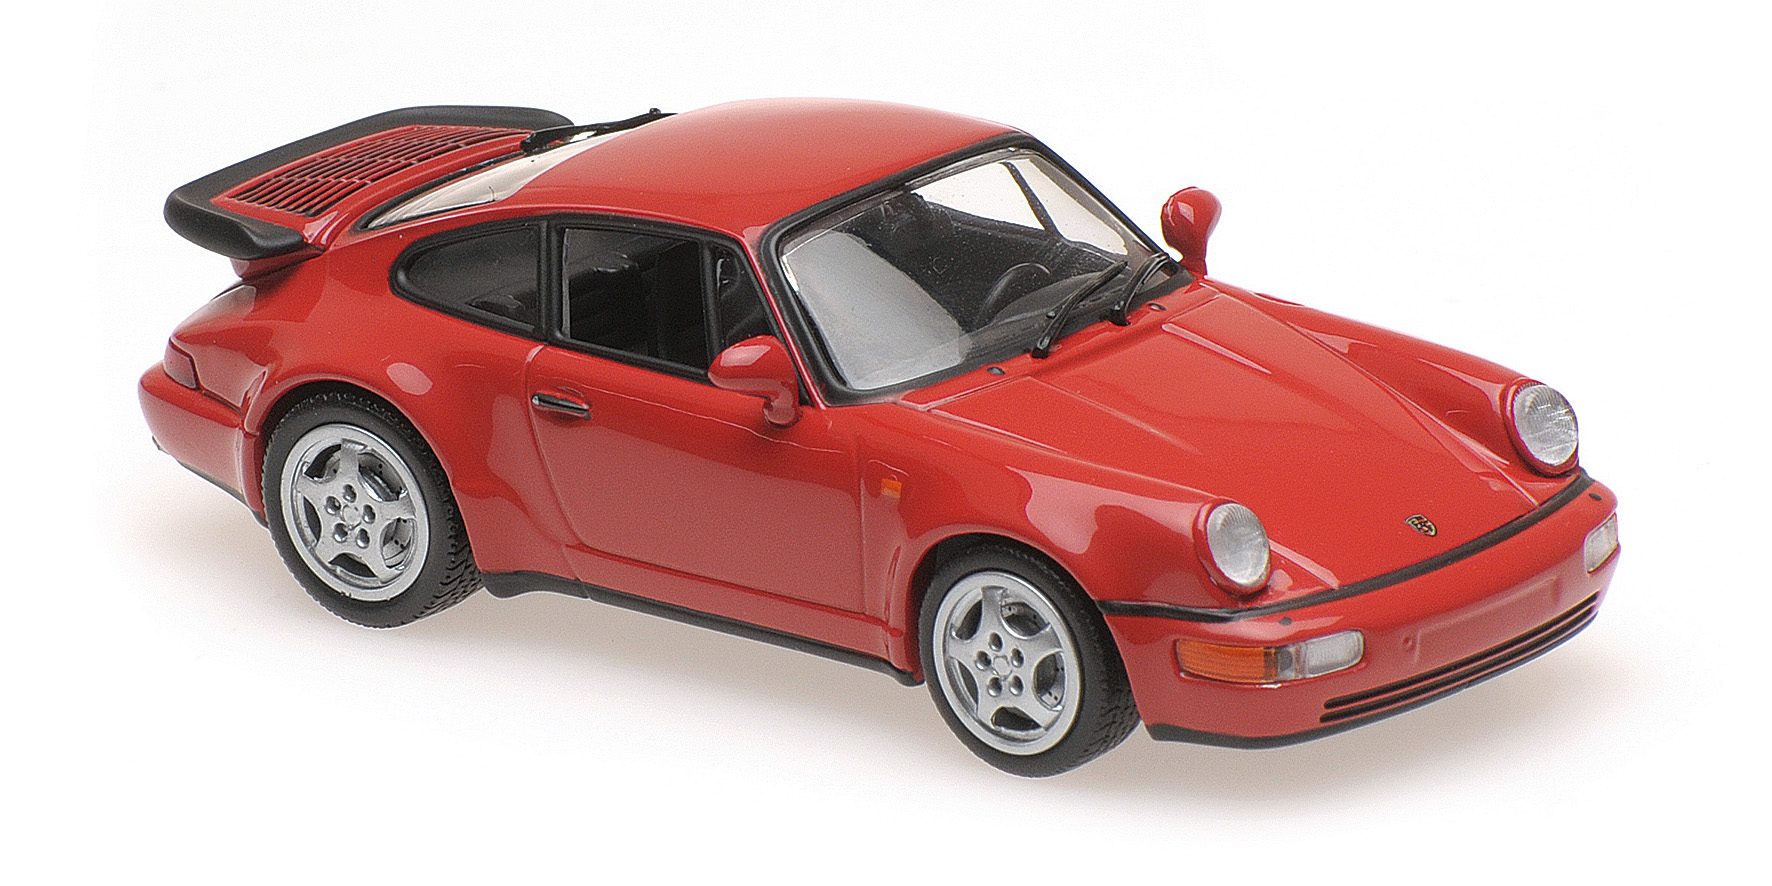 Porsche 911 (964) Turbo 1990 Rood